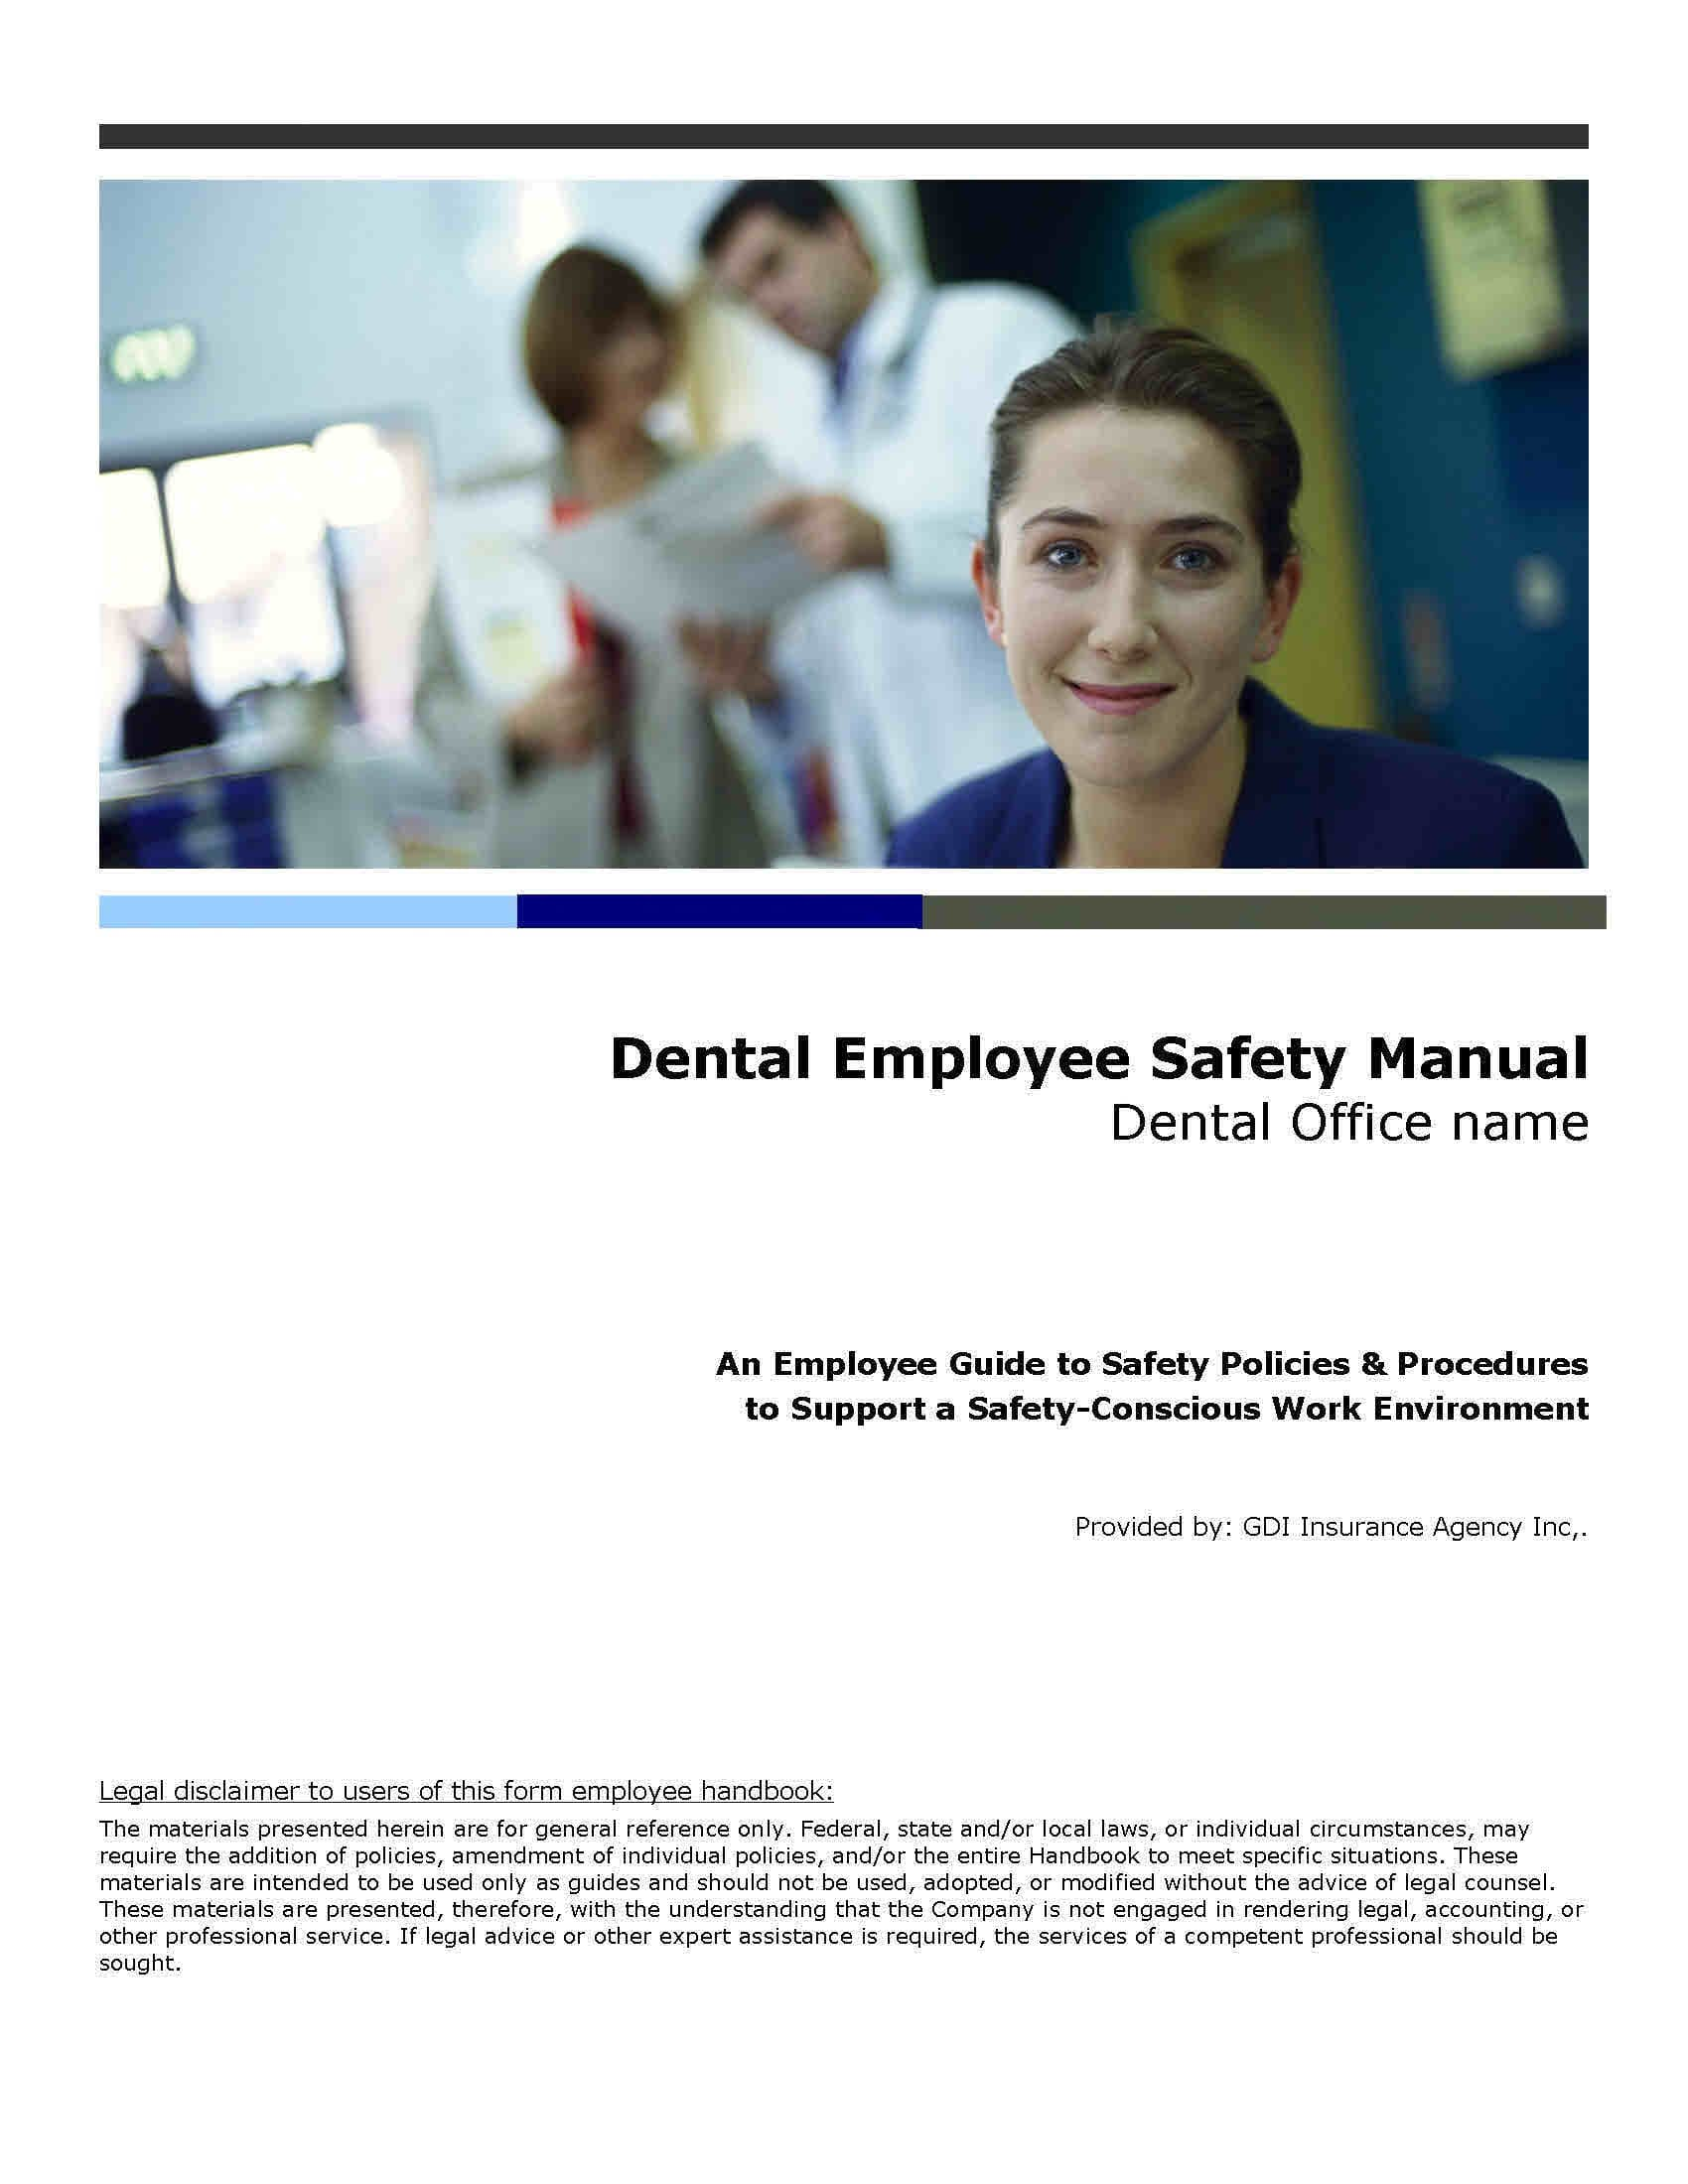 Dental and Medical Office Insurance